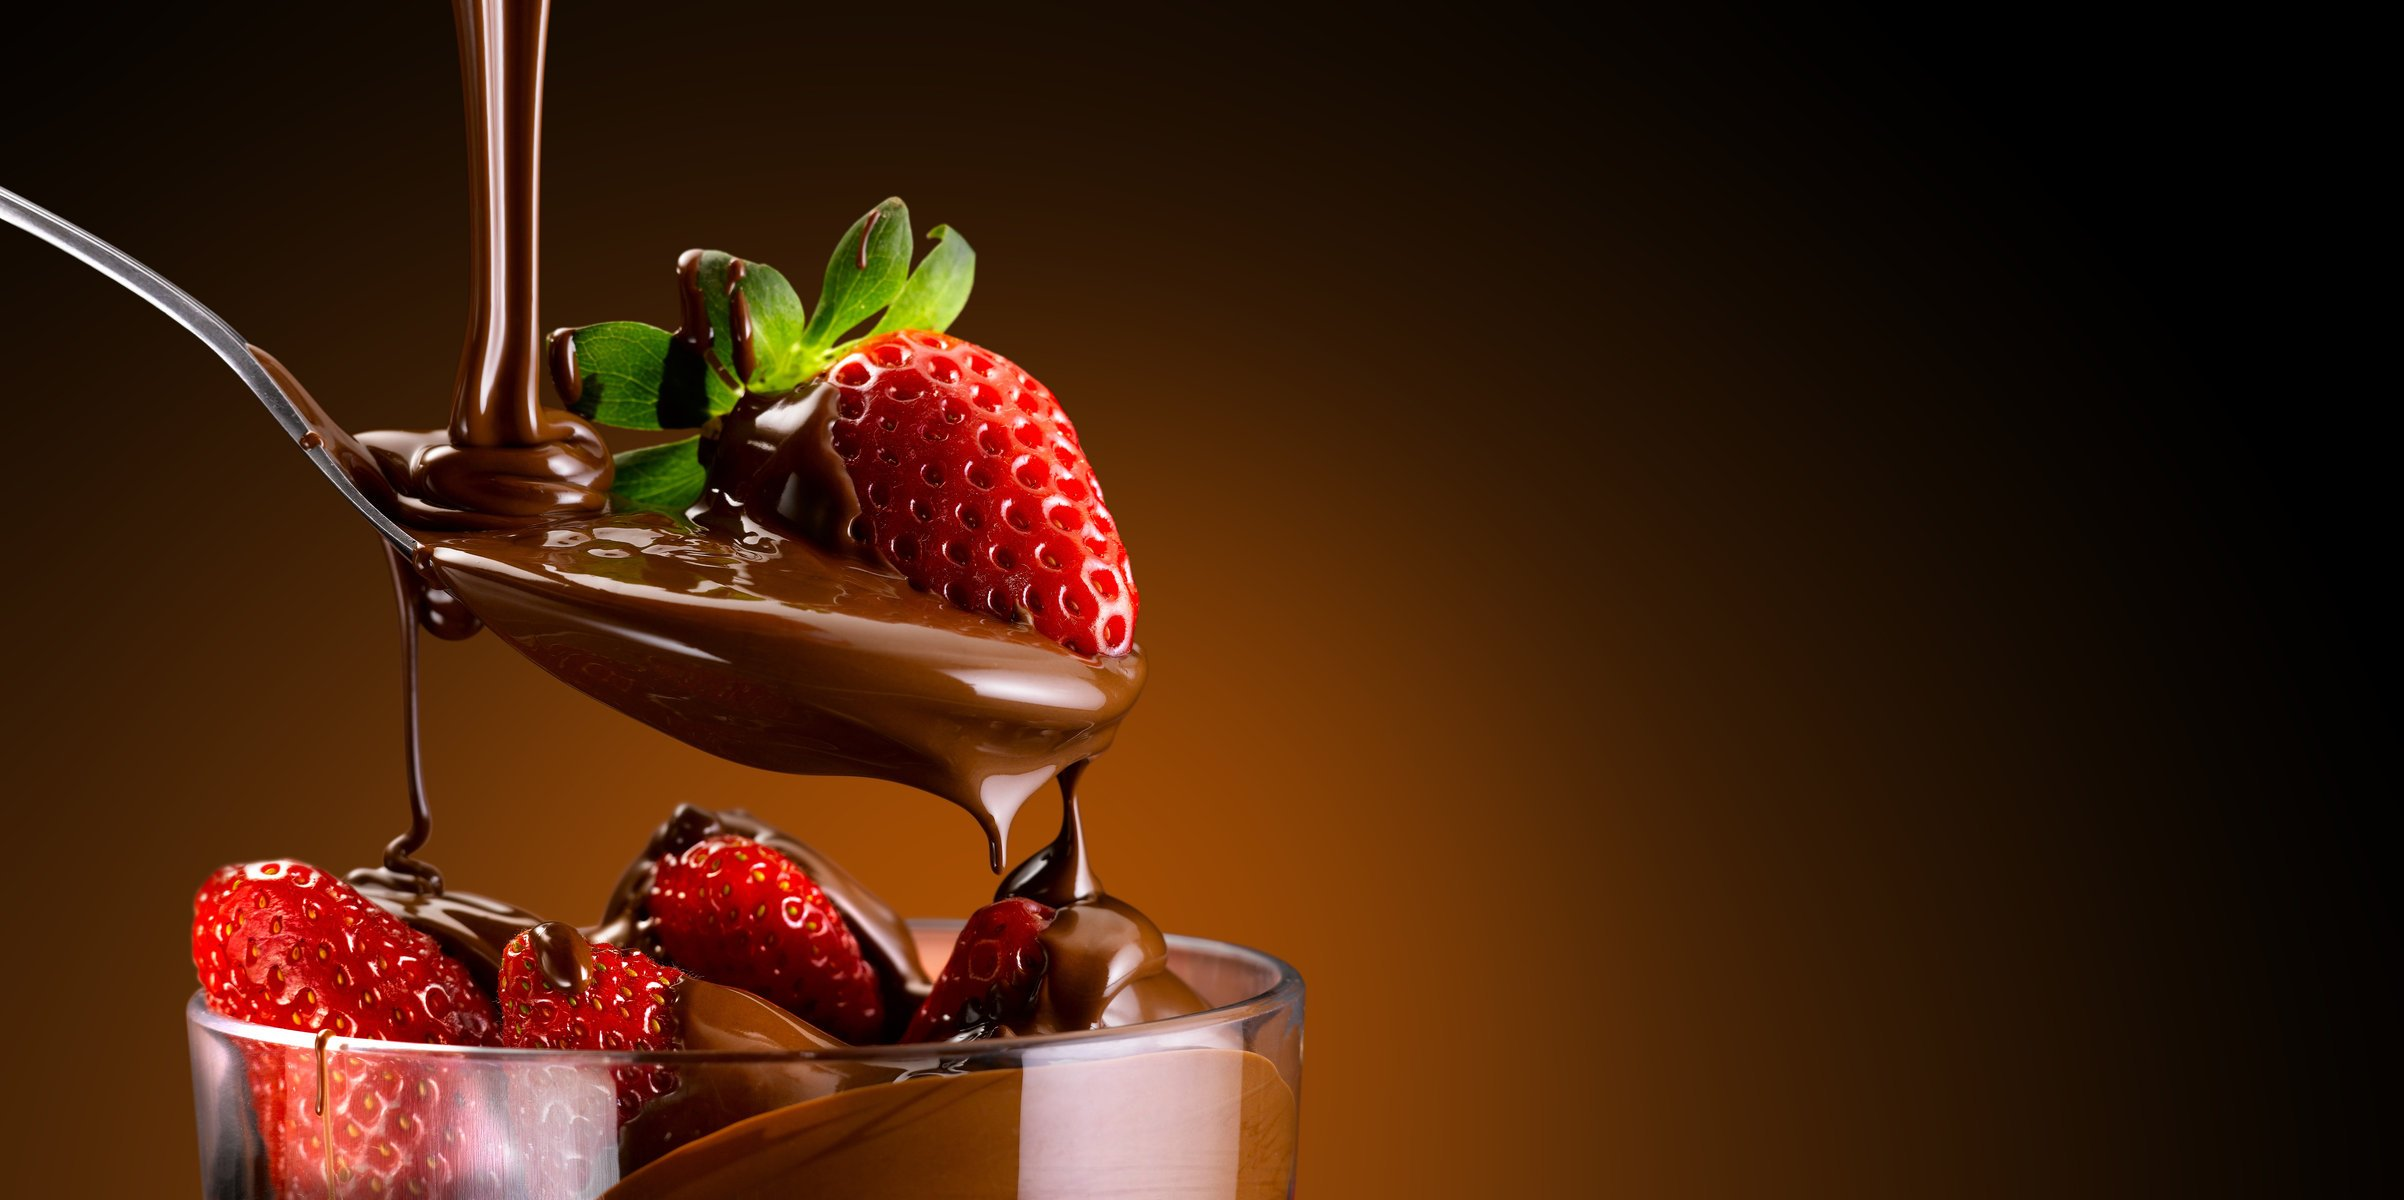 a critical analysis of strawberry and chocolate a movie story by senel paz